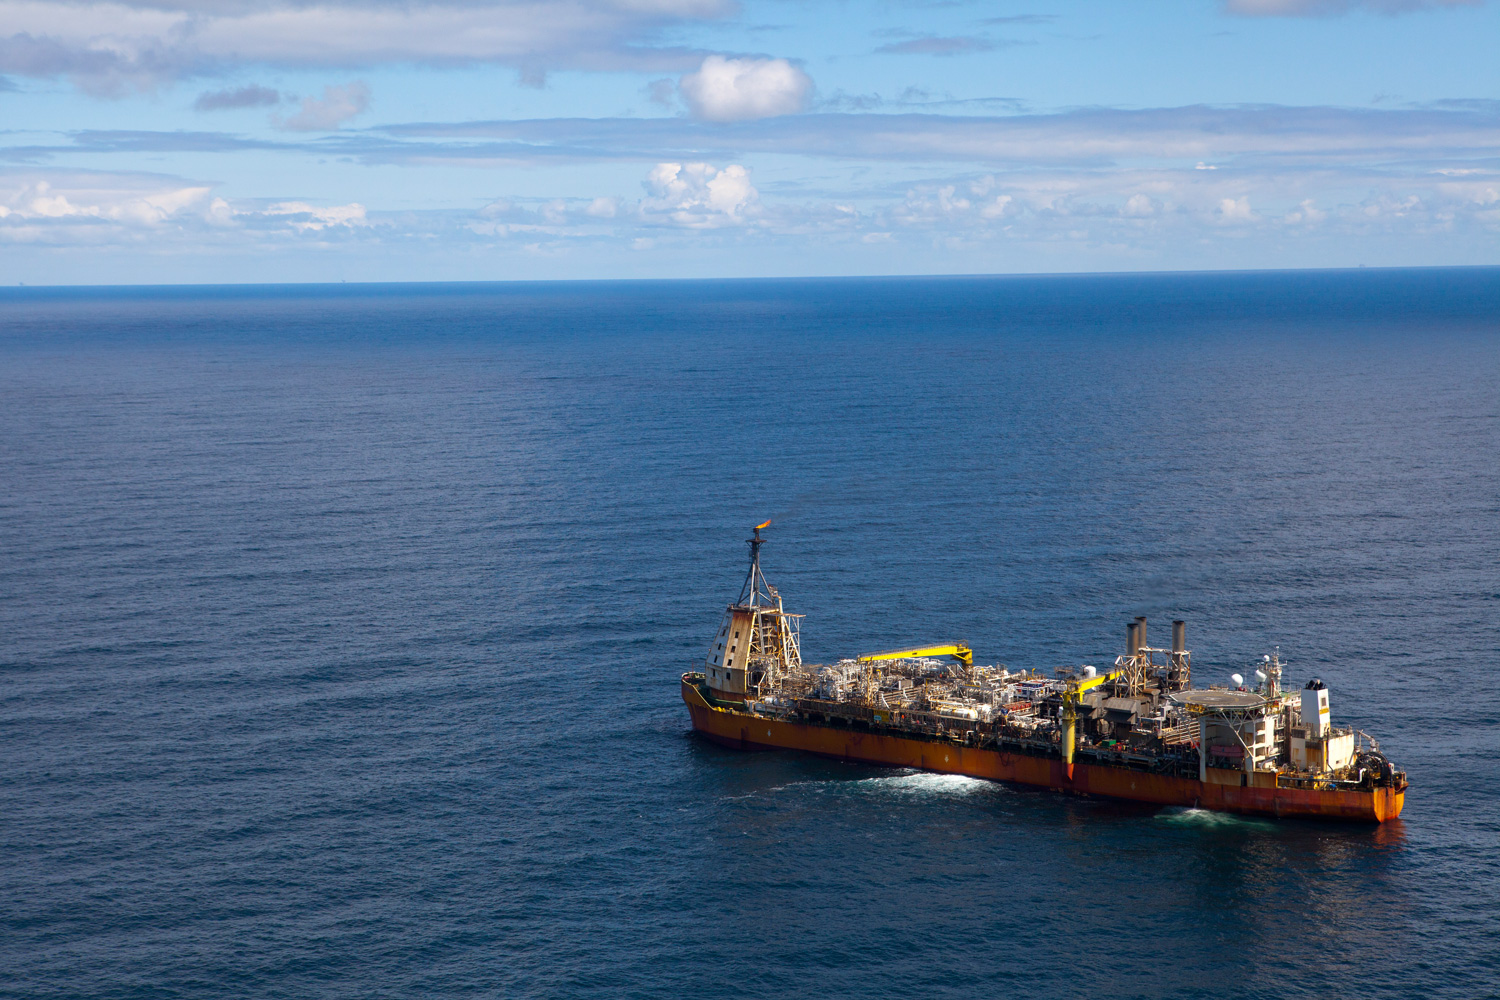 Value - Our value lies in our experienced management team with vast knowledge of North Sea assets and infrastructure, along with committed, strong investment and commercial partners.